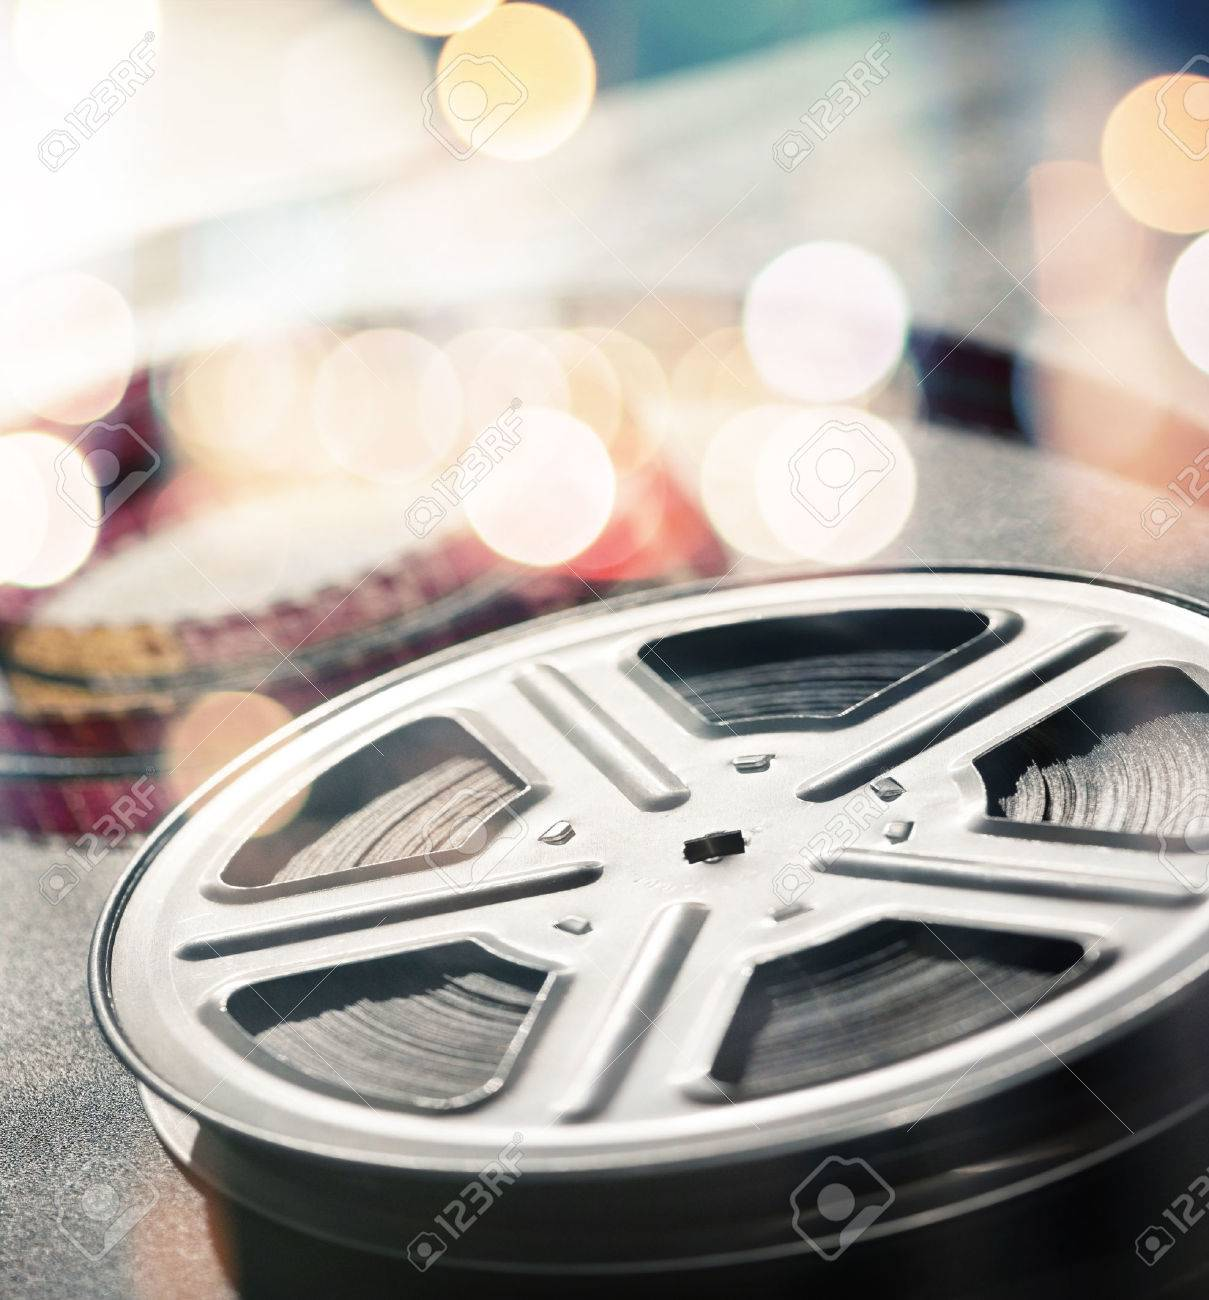 Motion picture film reel on the table Stock Photo - 40564512